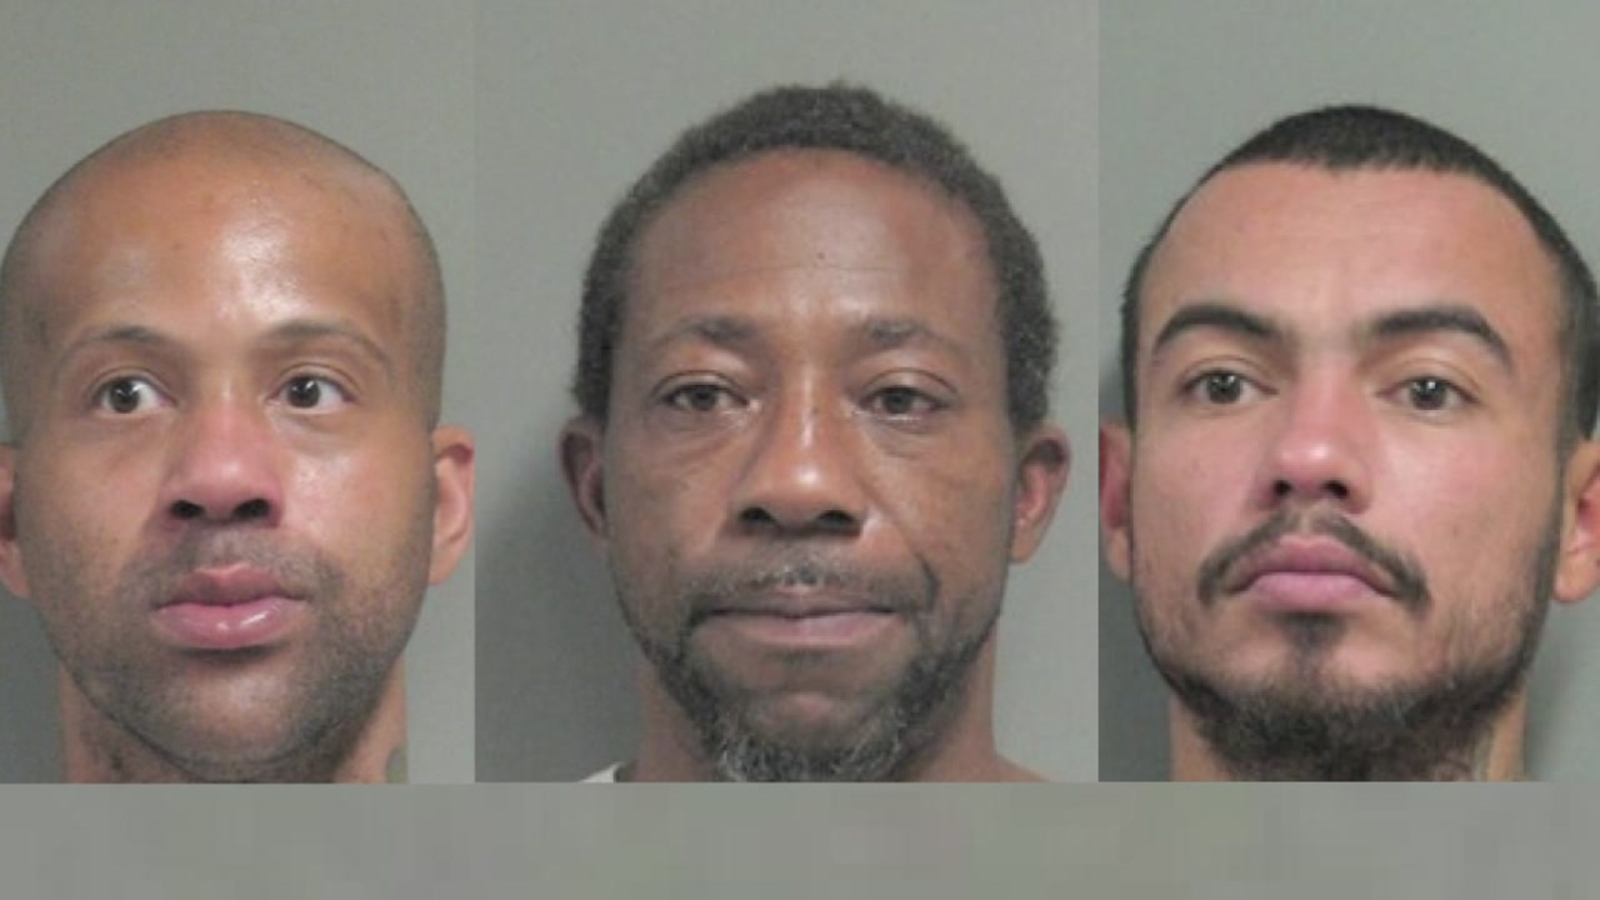 3 men accused of stealing tools from Lowes in Rosenberg